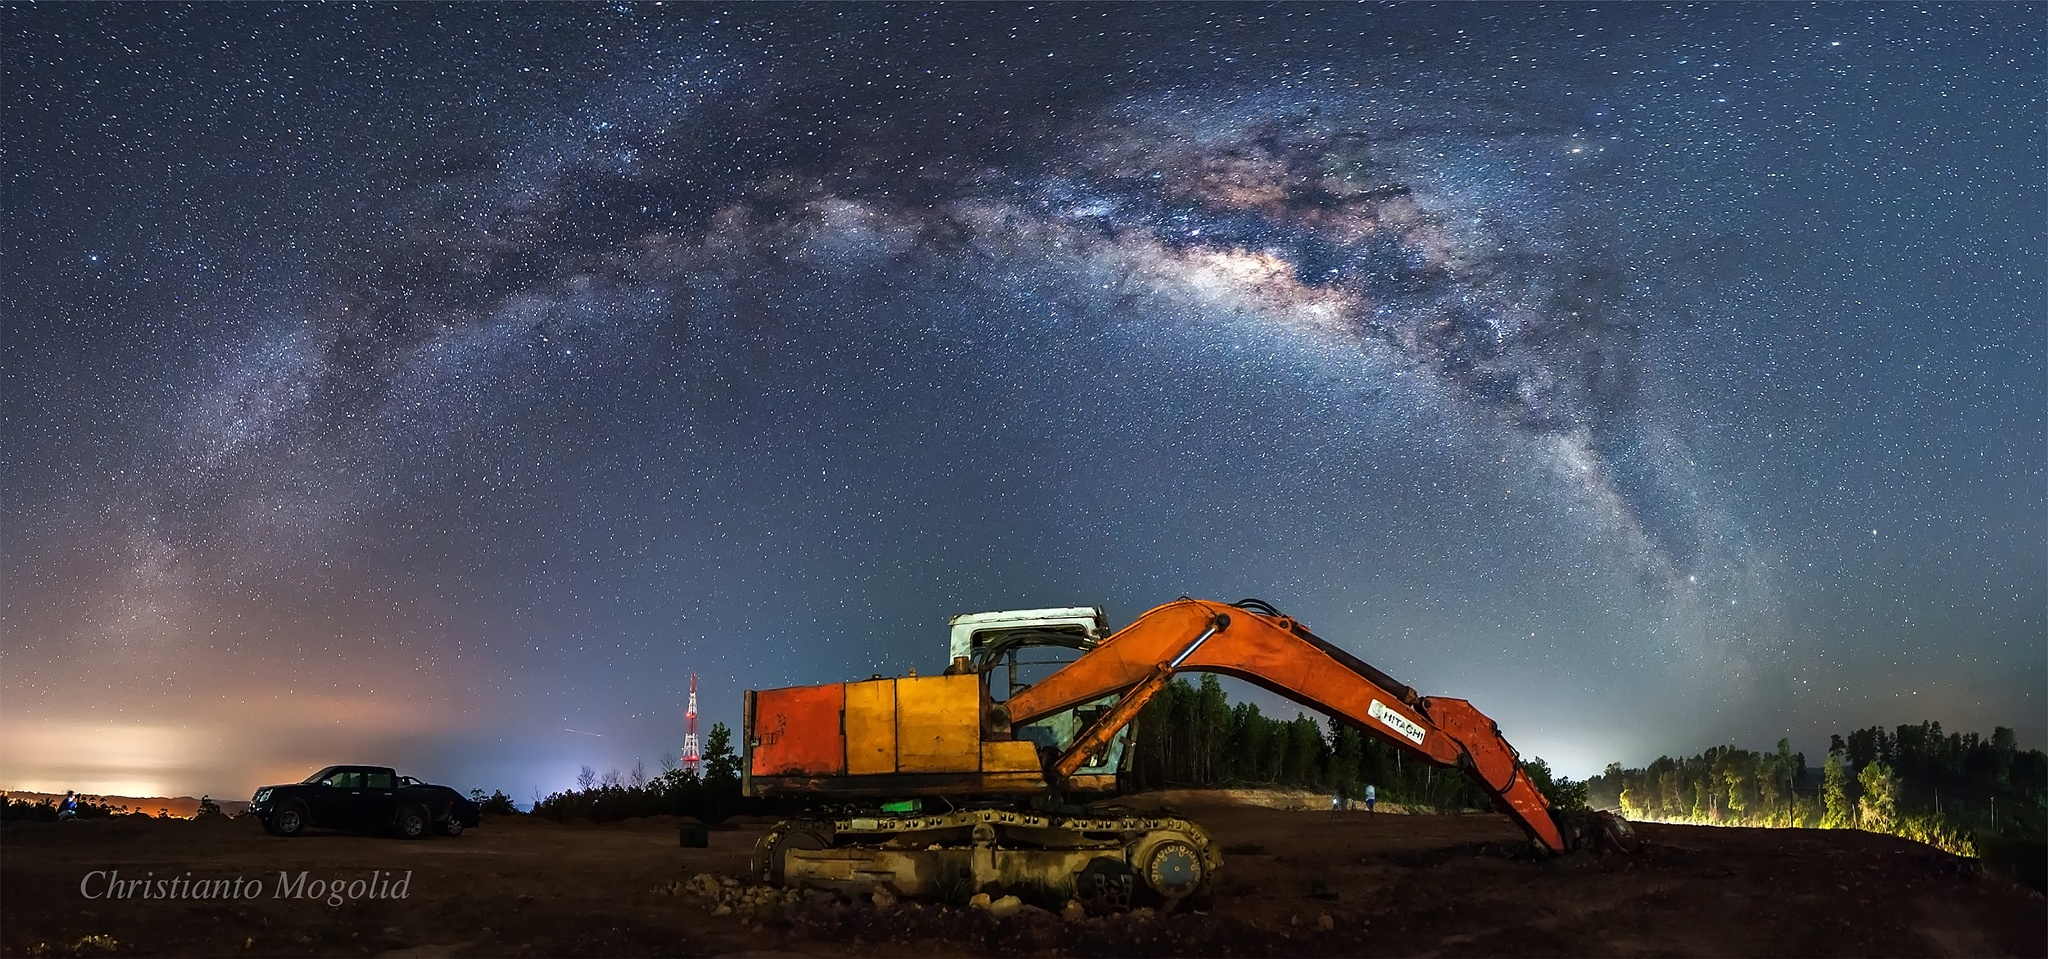 Night construction by Christianto Mogolid